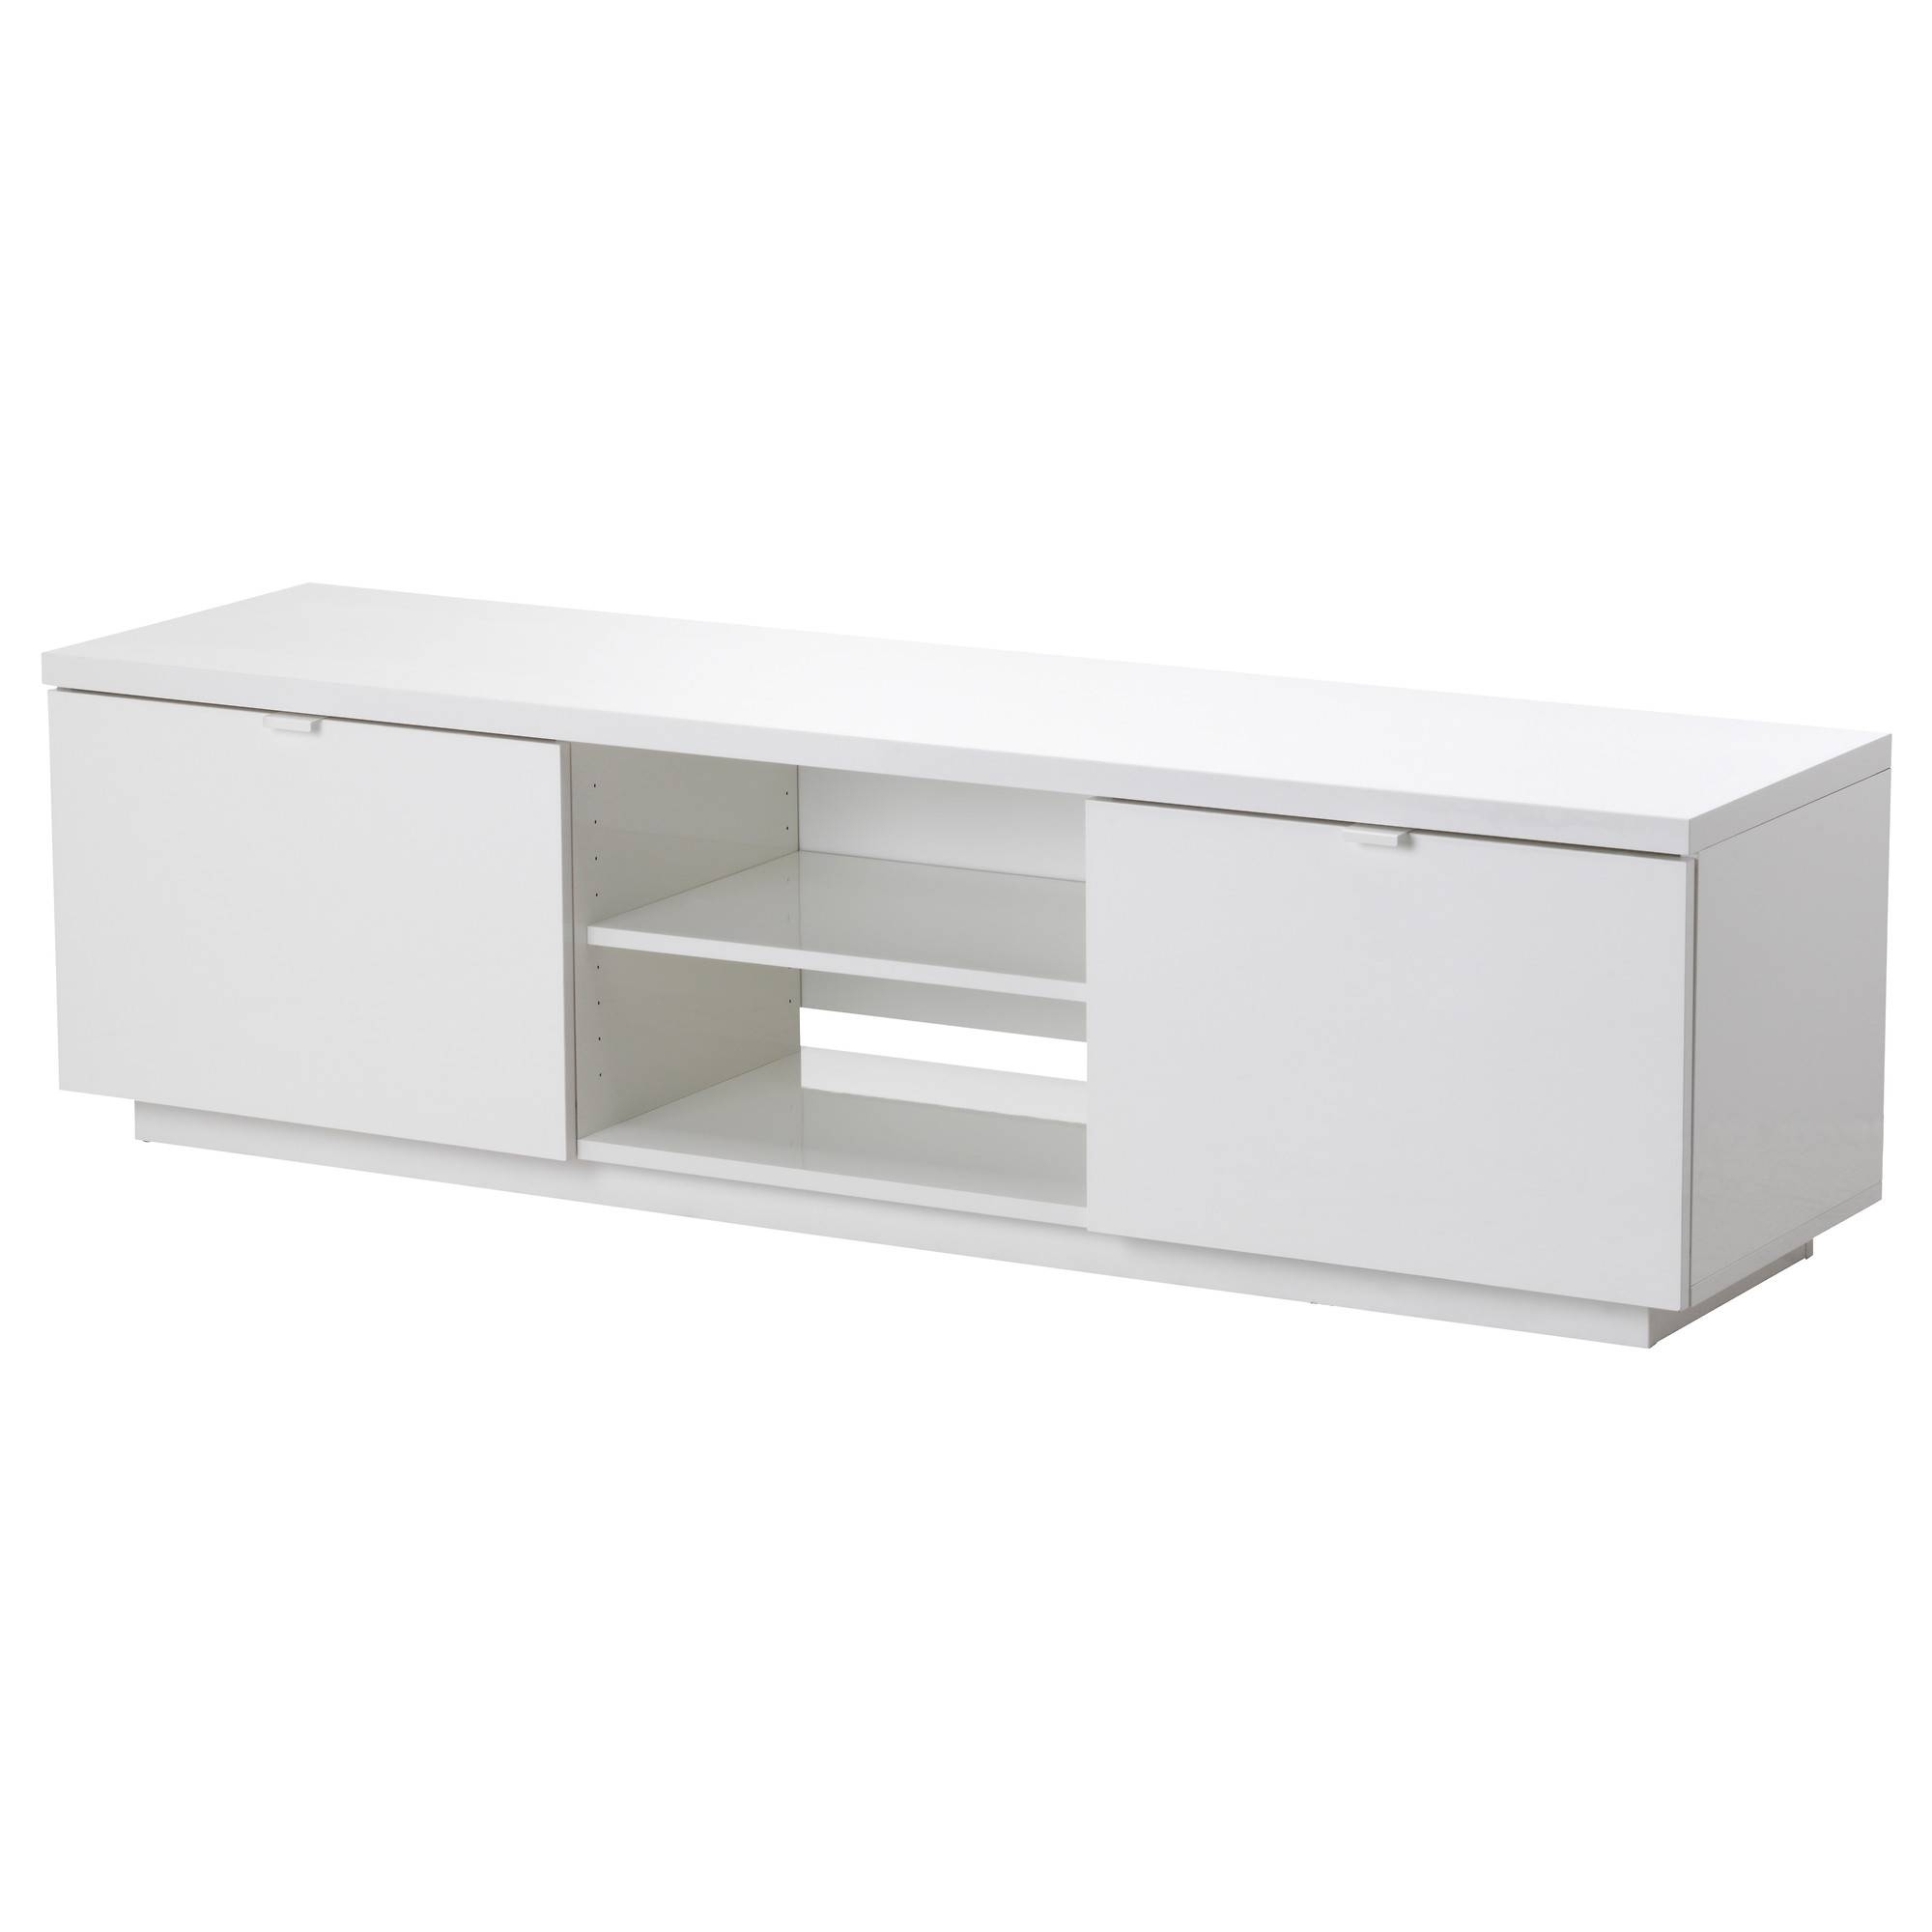 Byås Tv Unit - Ikea regarding Corner Tv Unit White Gloss (Image 3 of 15)